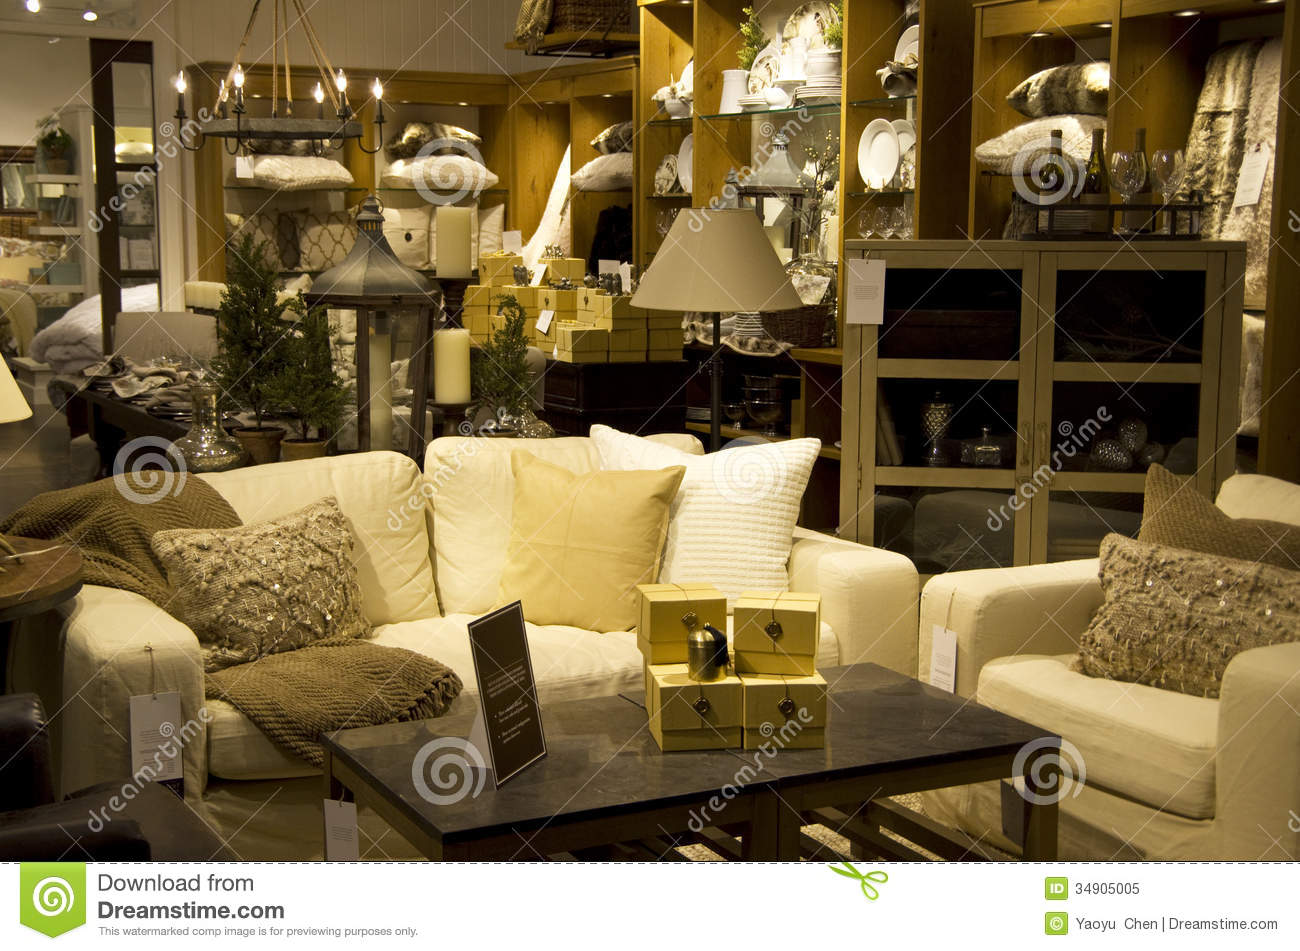 Luxury Furniture Home Decor Store Stock Image Image Of Indoors Table 34905005